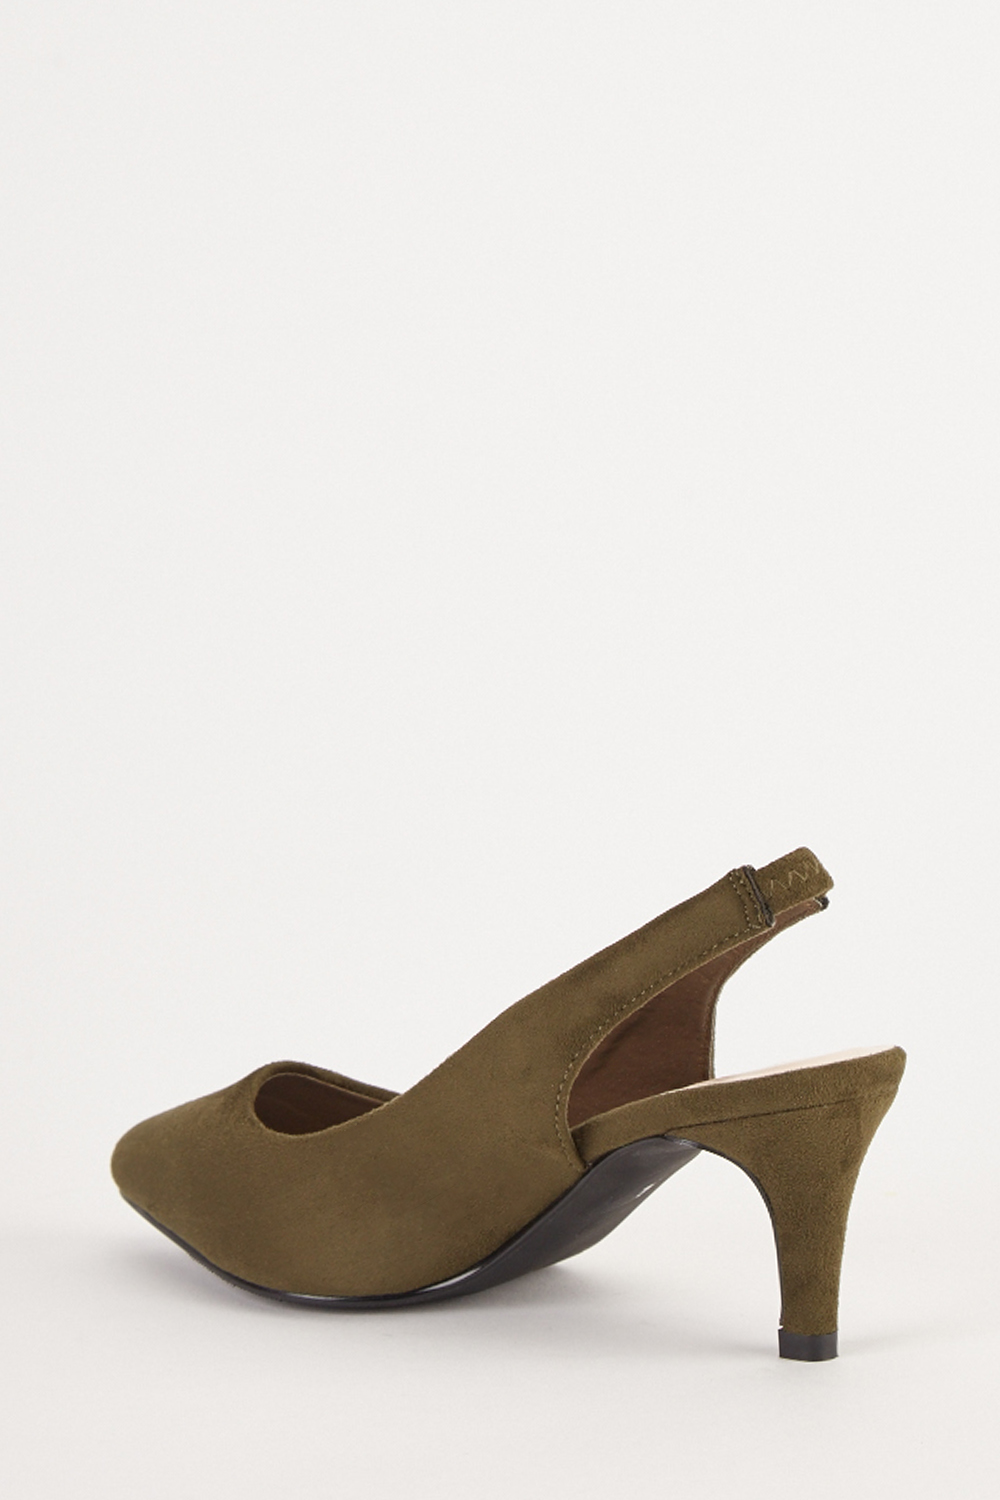 Court Slingback Kitten Heels Olive Just 163 5